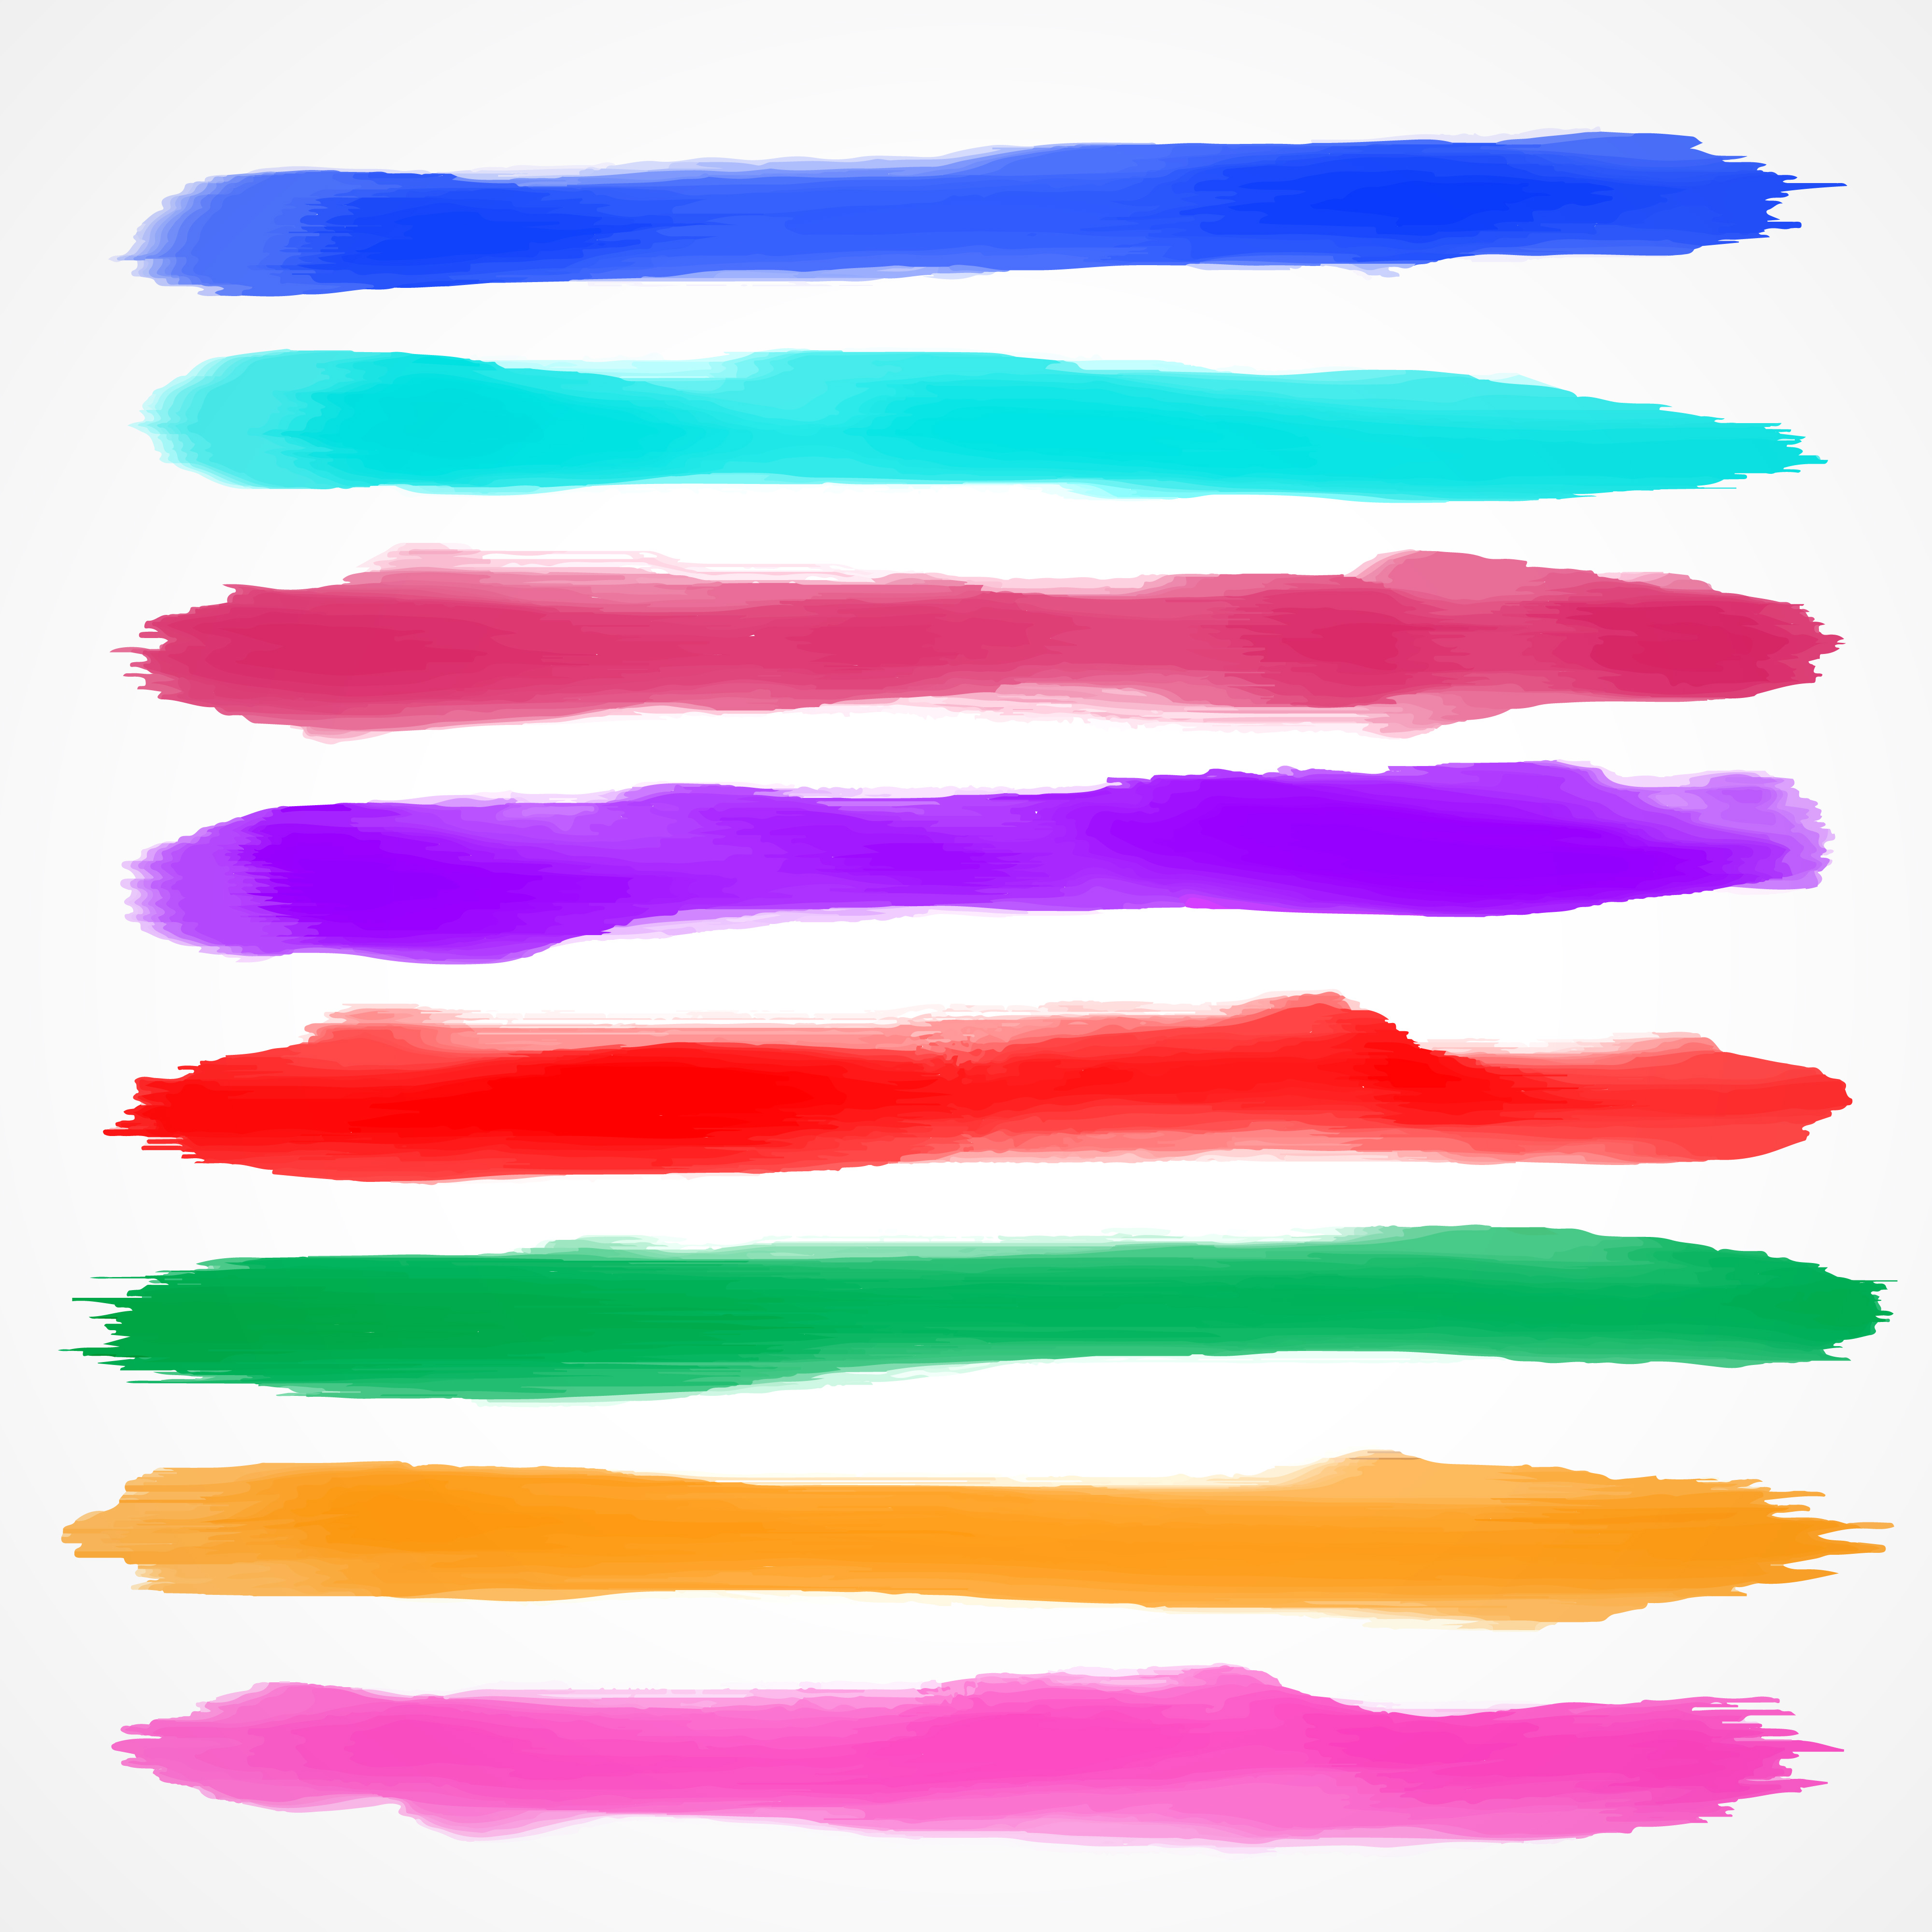 Watercolor Brush Strokes Free Vector Art 4589 Free